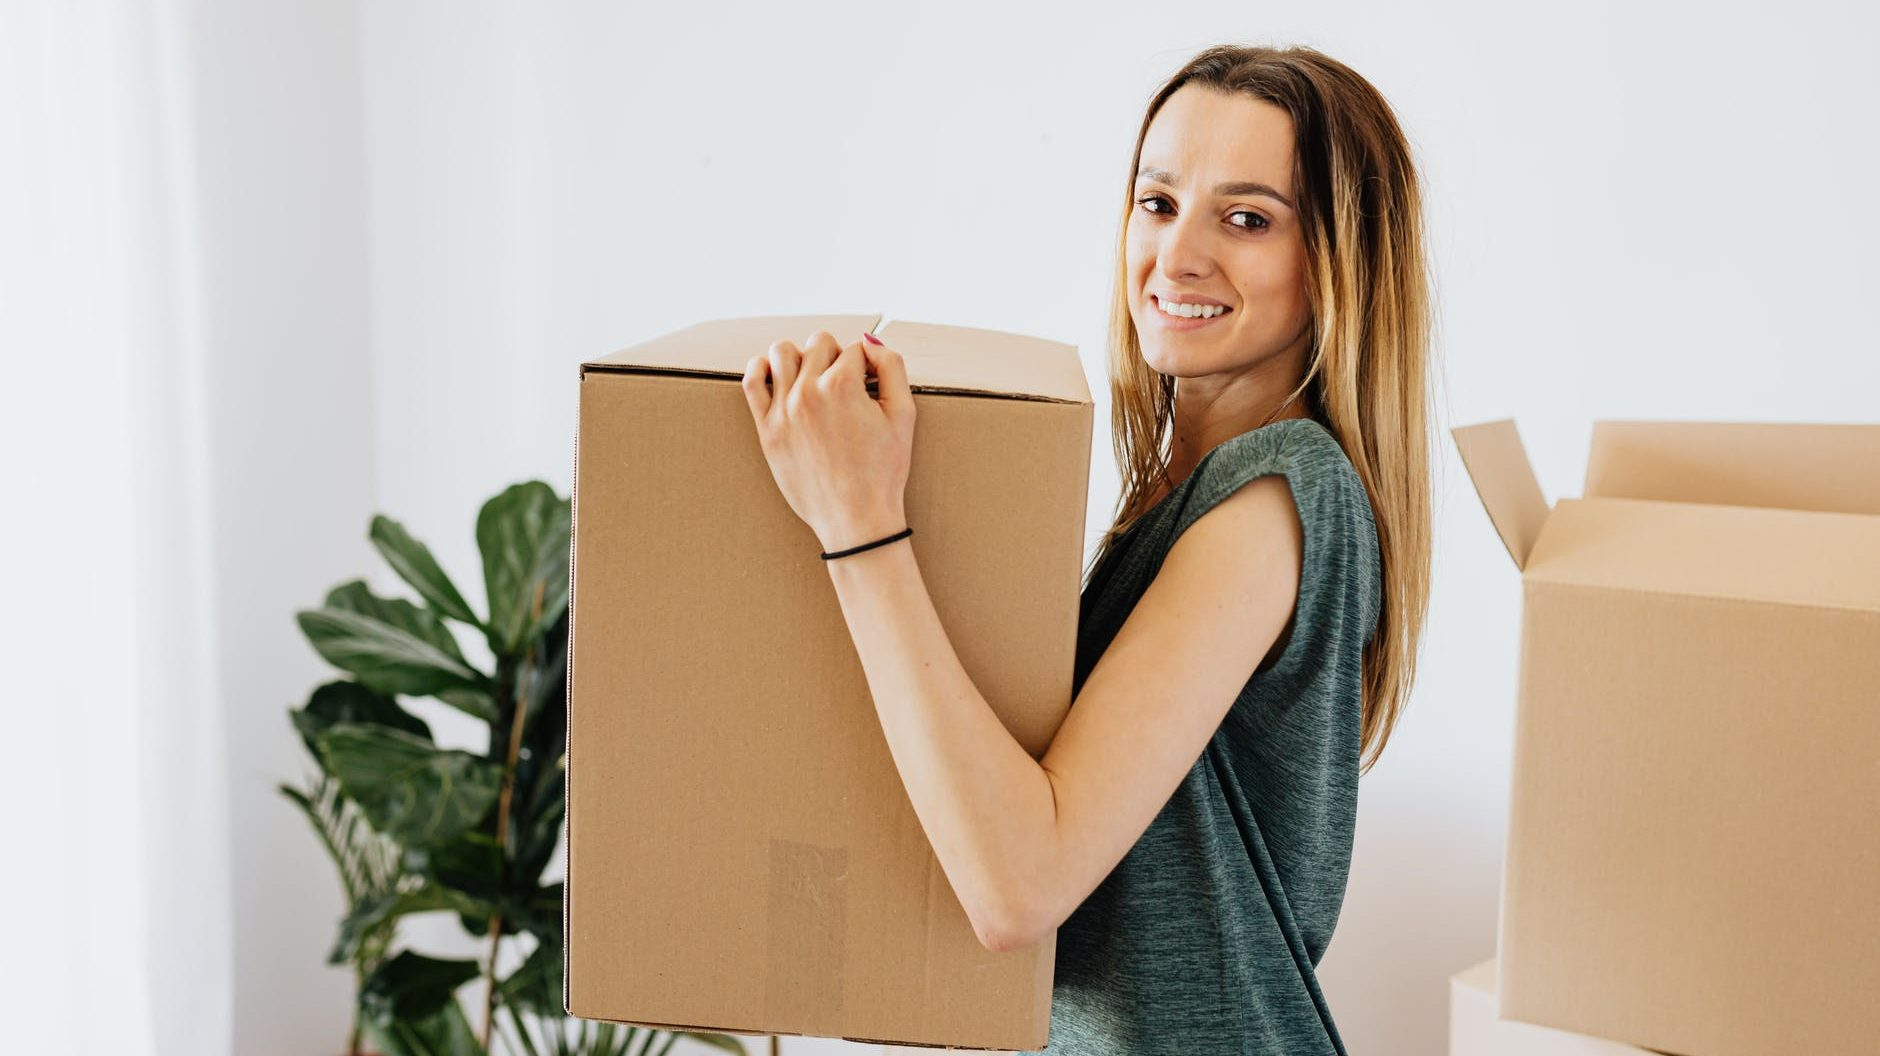 cheerful woman carrying packed carton box